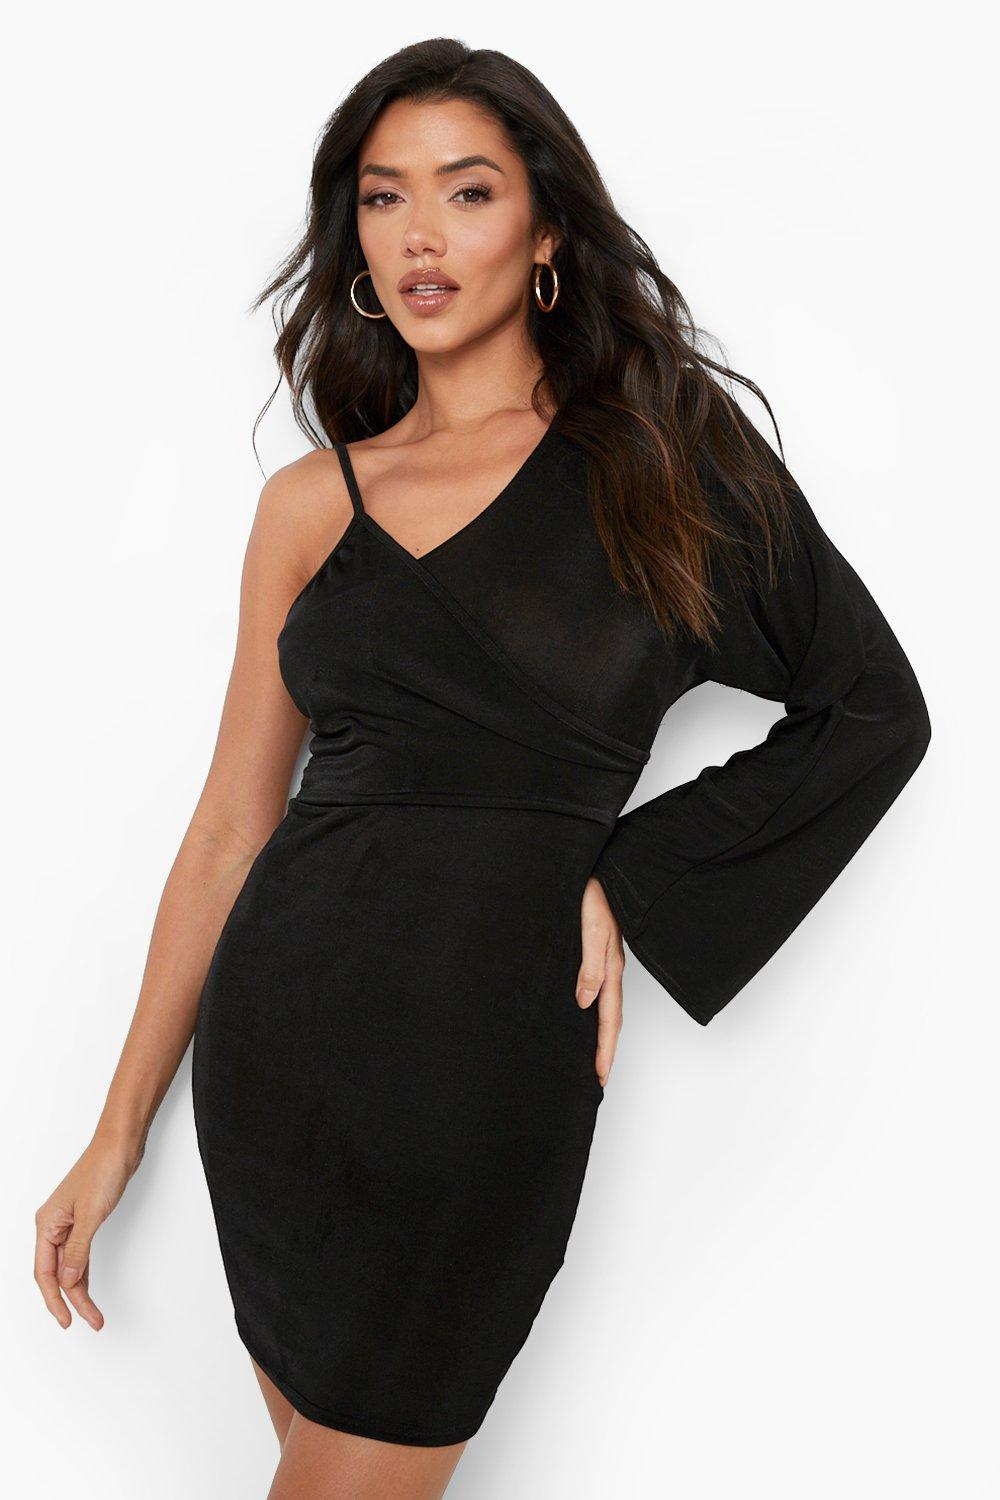 80s Fashion— What Women Wore in the 1980s Womens Slinky One Shoulder Bodycon Mini Dress - Black - 10 $20.00 AT vintagedancer.com